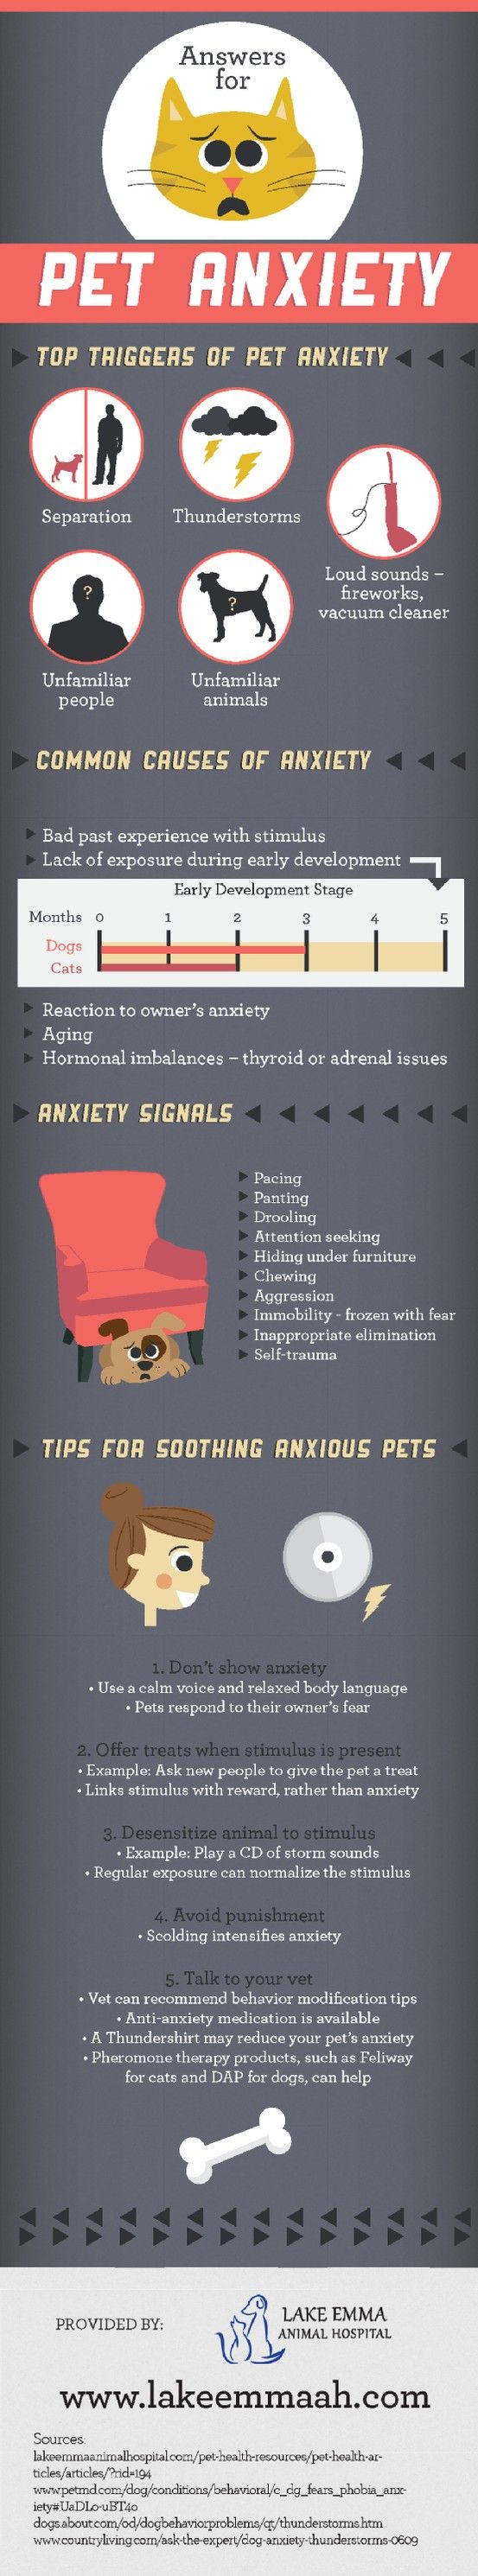 Early development for dogs occurs between 0 and 3 months of age. Lack of exposure during this phase may lead to pet anxiety triggered by certain people or situations. Read about pet anxiety solutions on this infographic from a Lake Mary vet clinic.